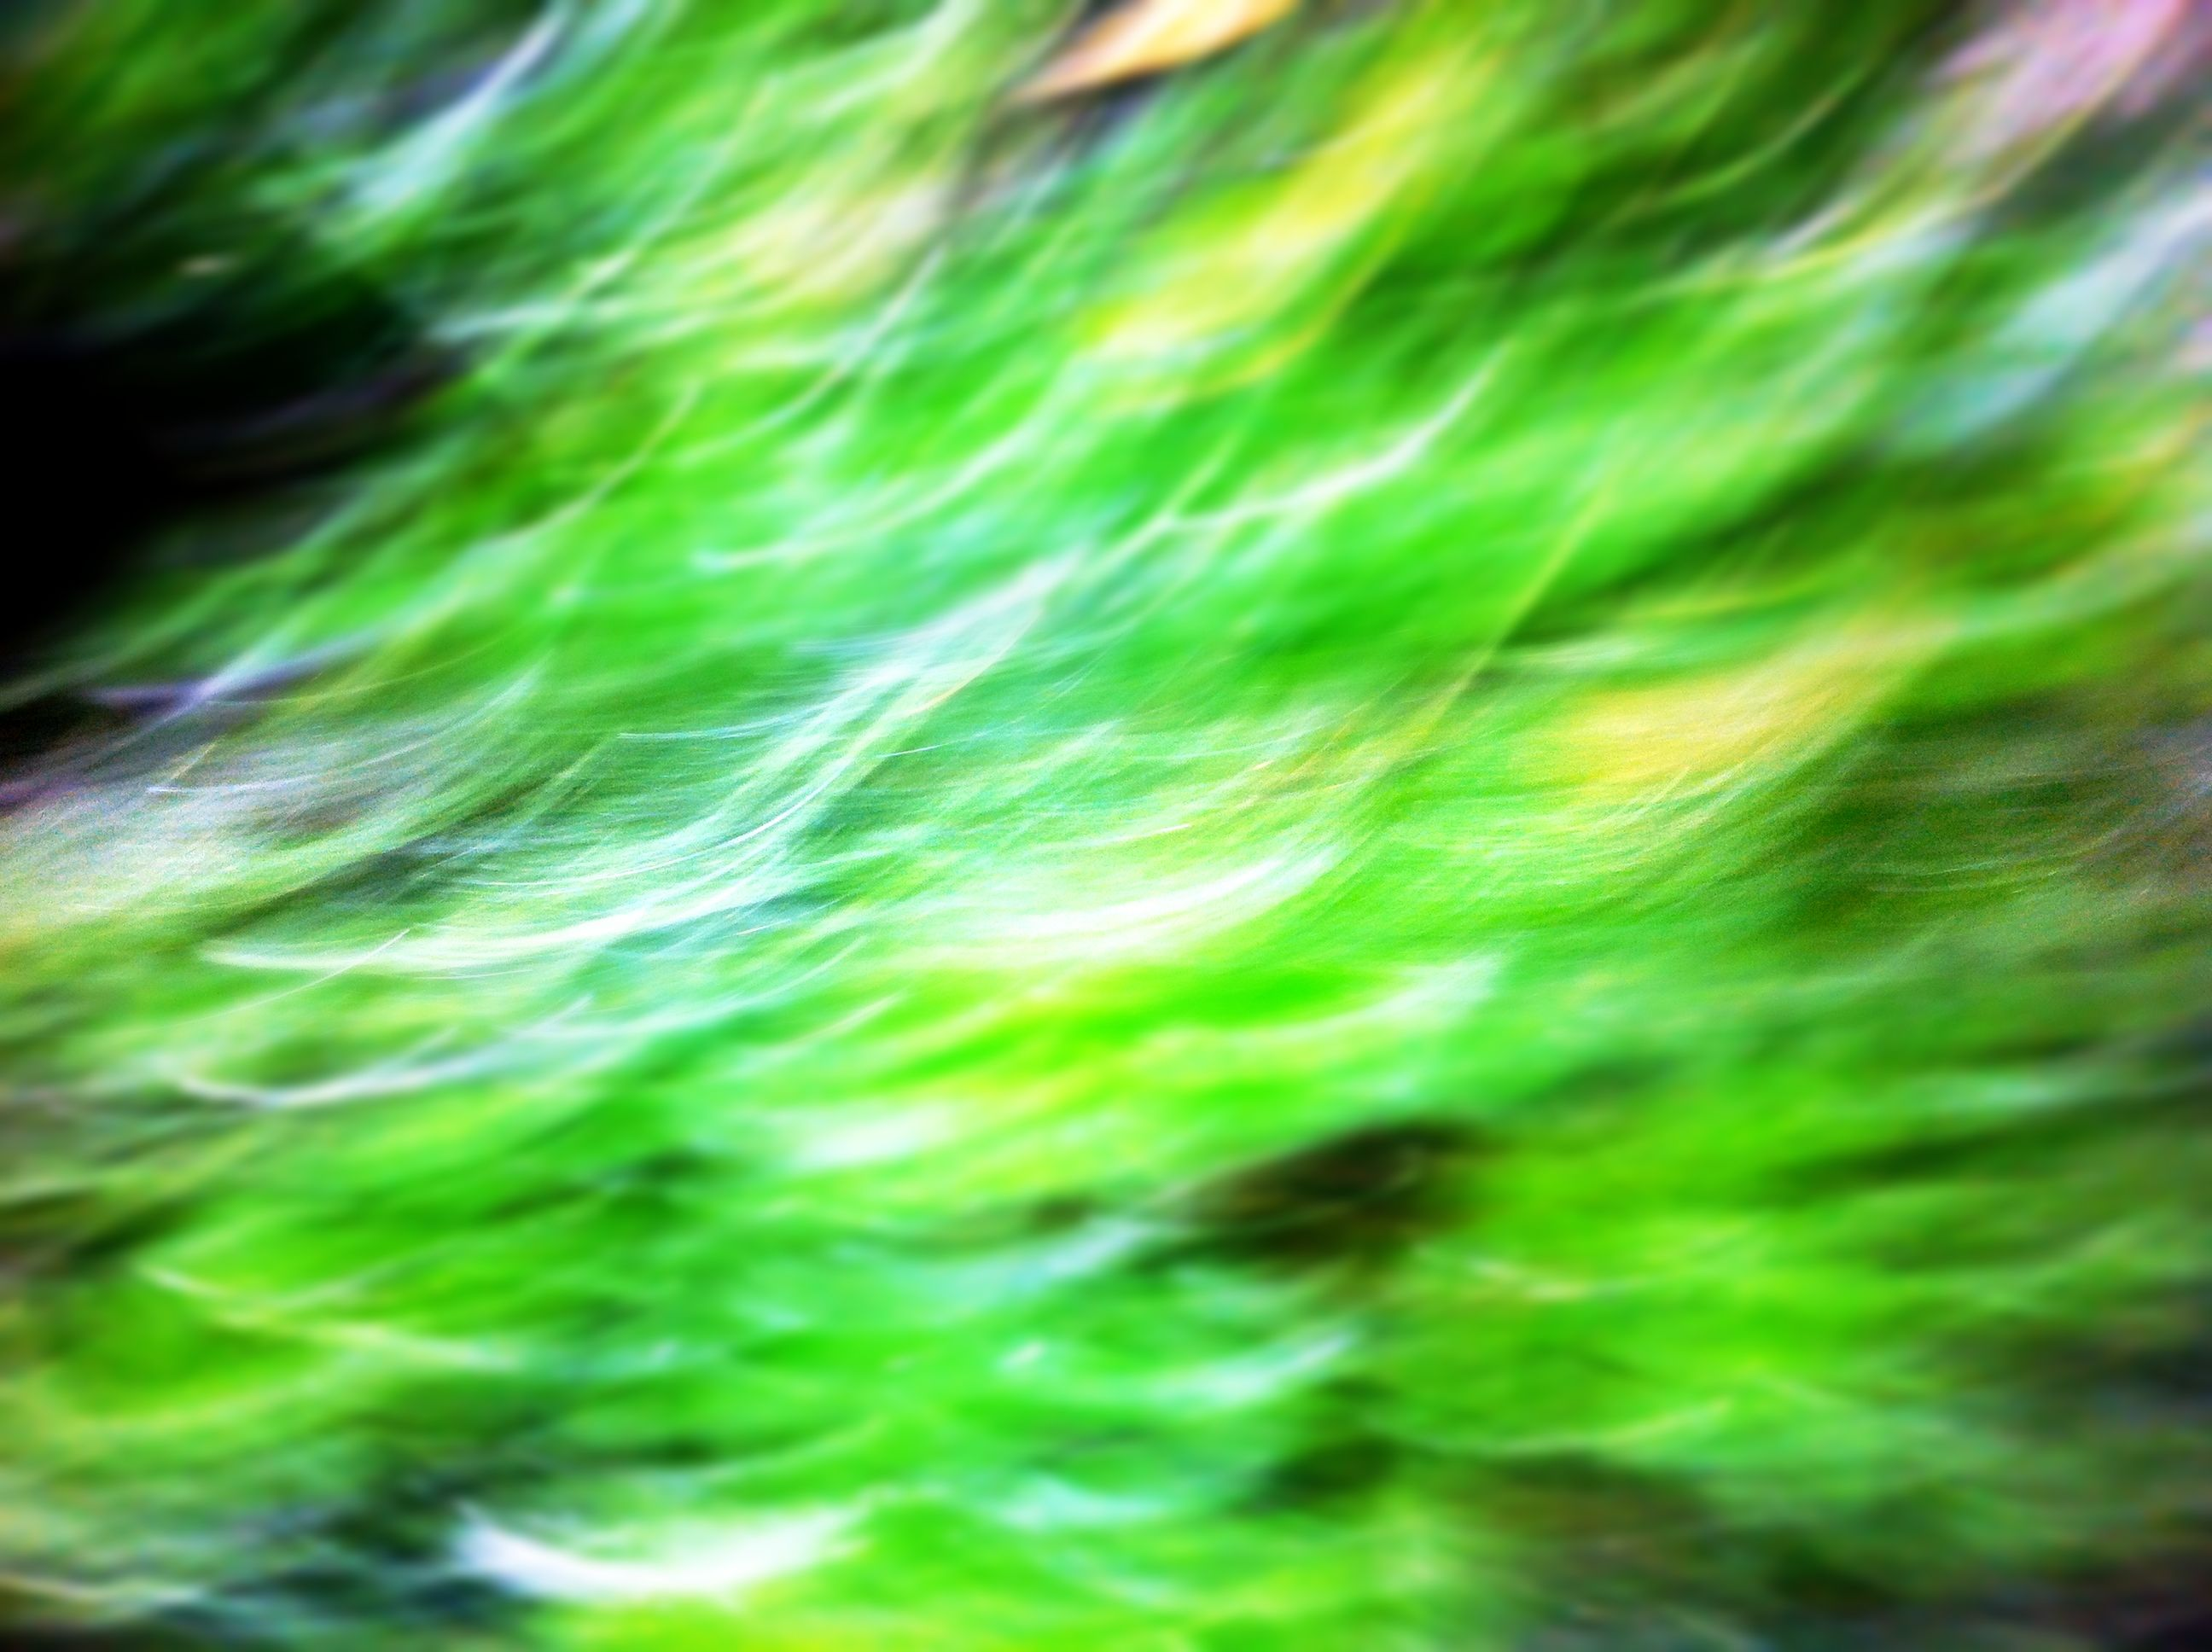 I just love green grass and wanted to show how much energy and light there is in it